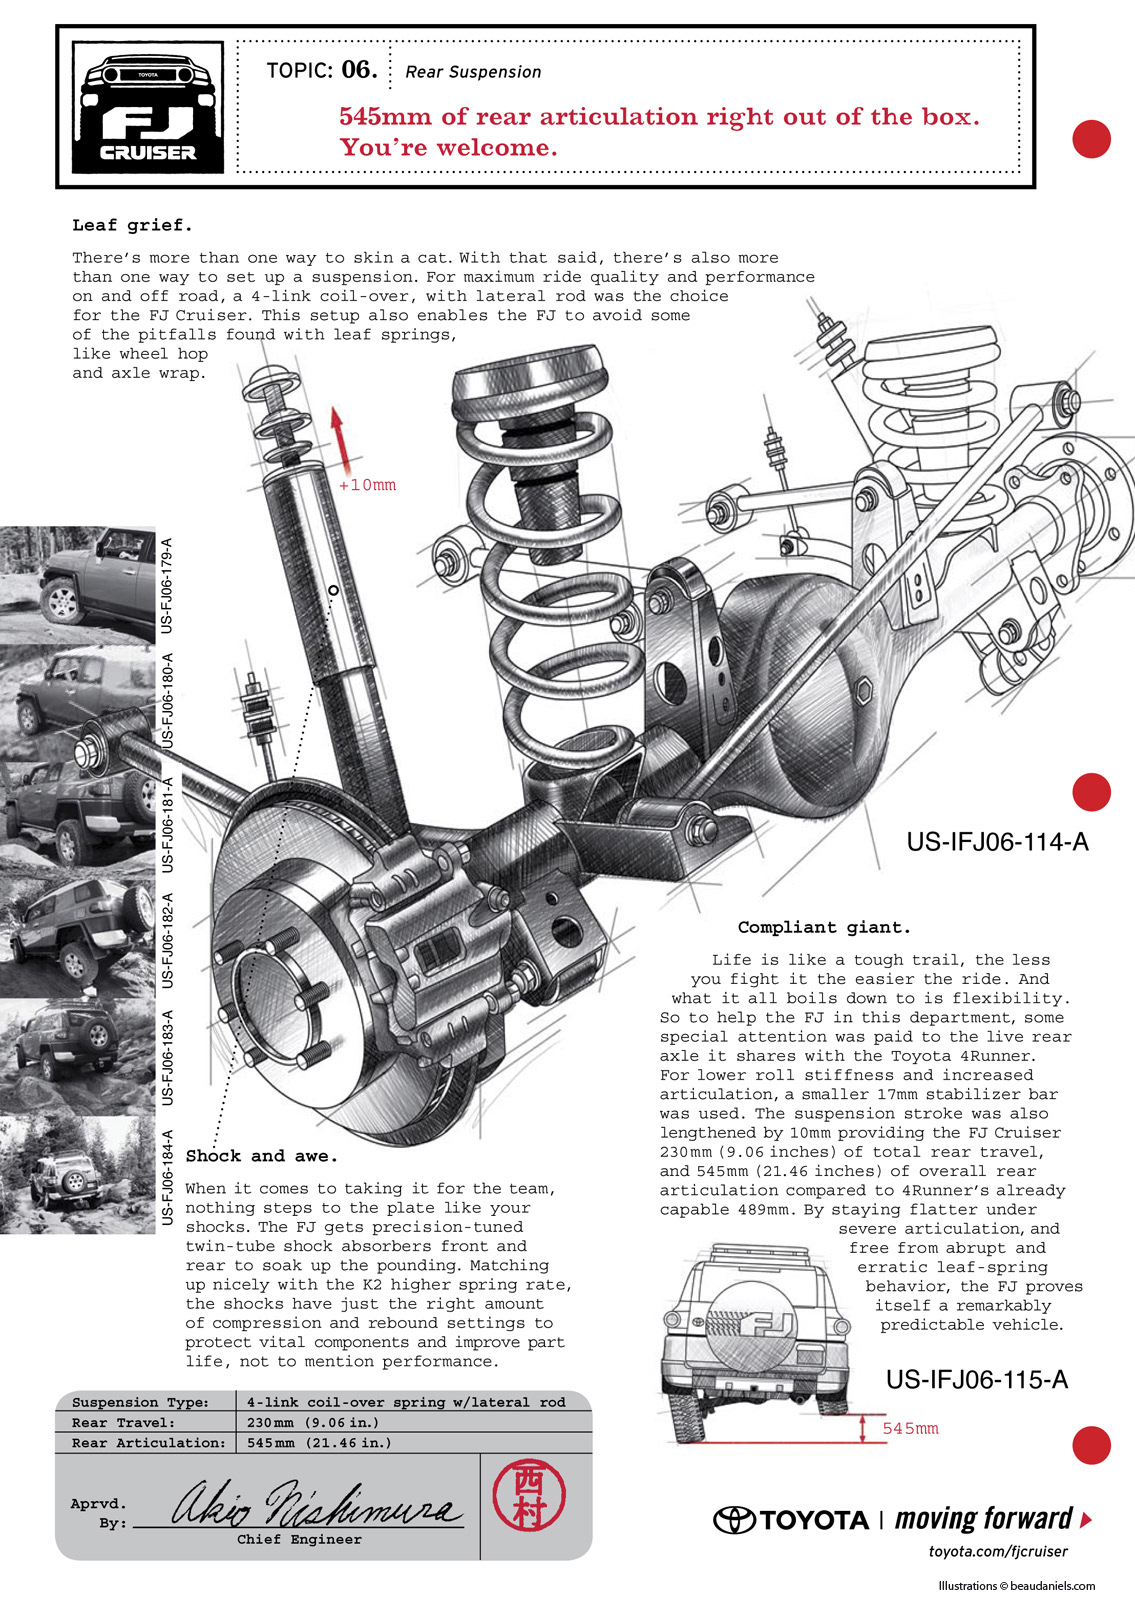 FJ Cruiser Ads. Rear suspension technical illustration, Toyota FJ Cruiser.